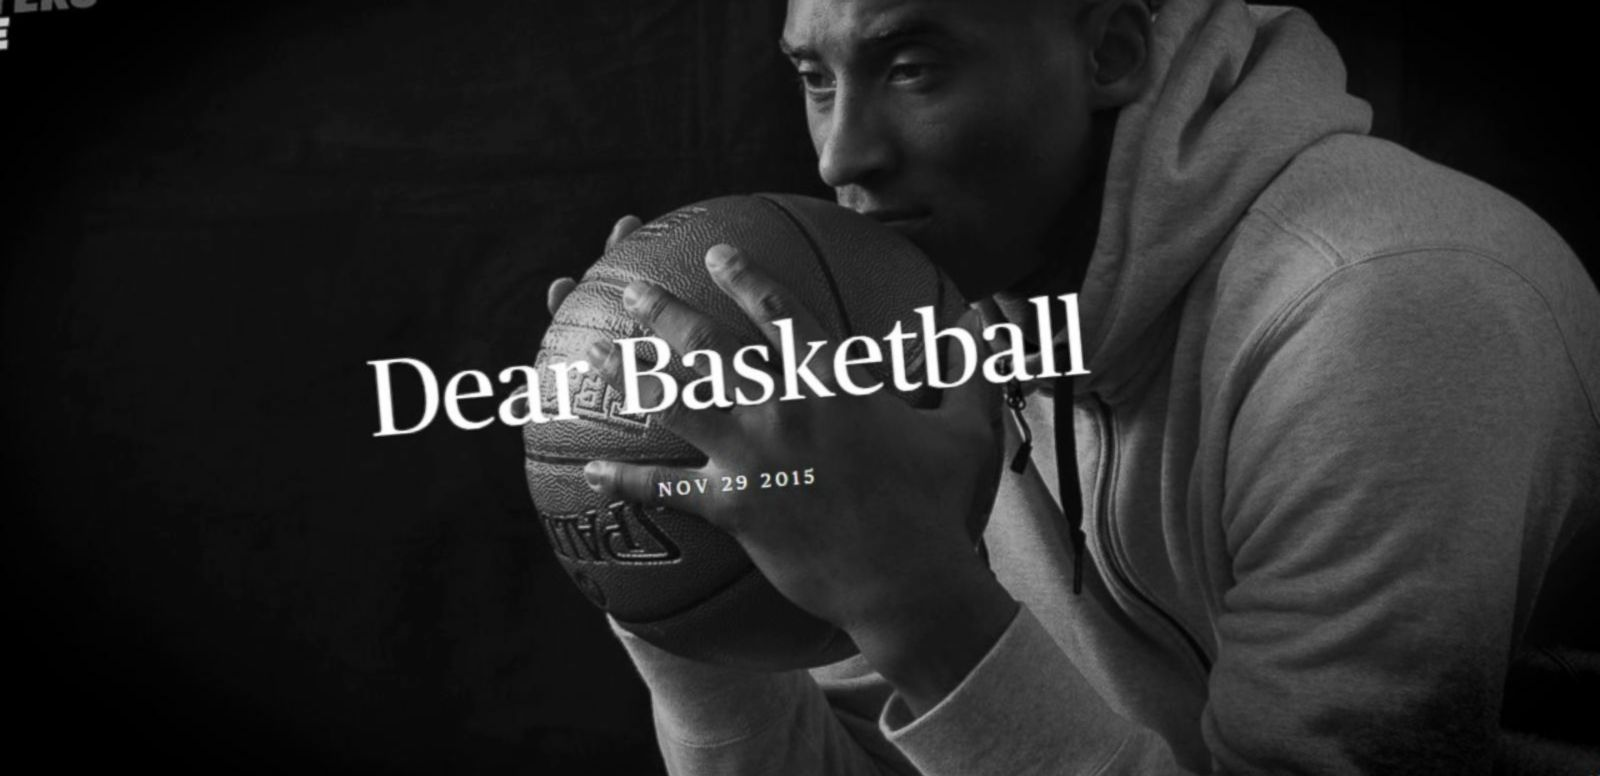 VIDEO: Kobe Bryant Announces Retirement From NBA